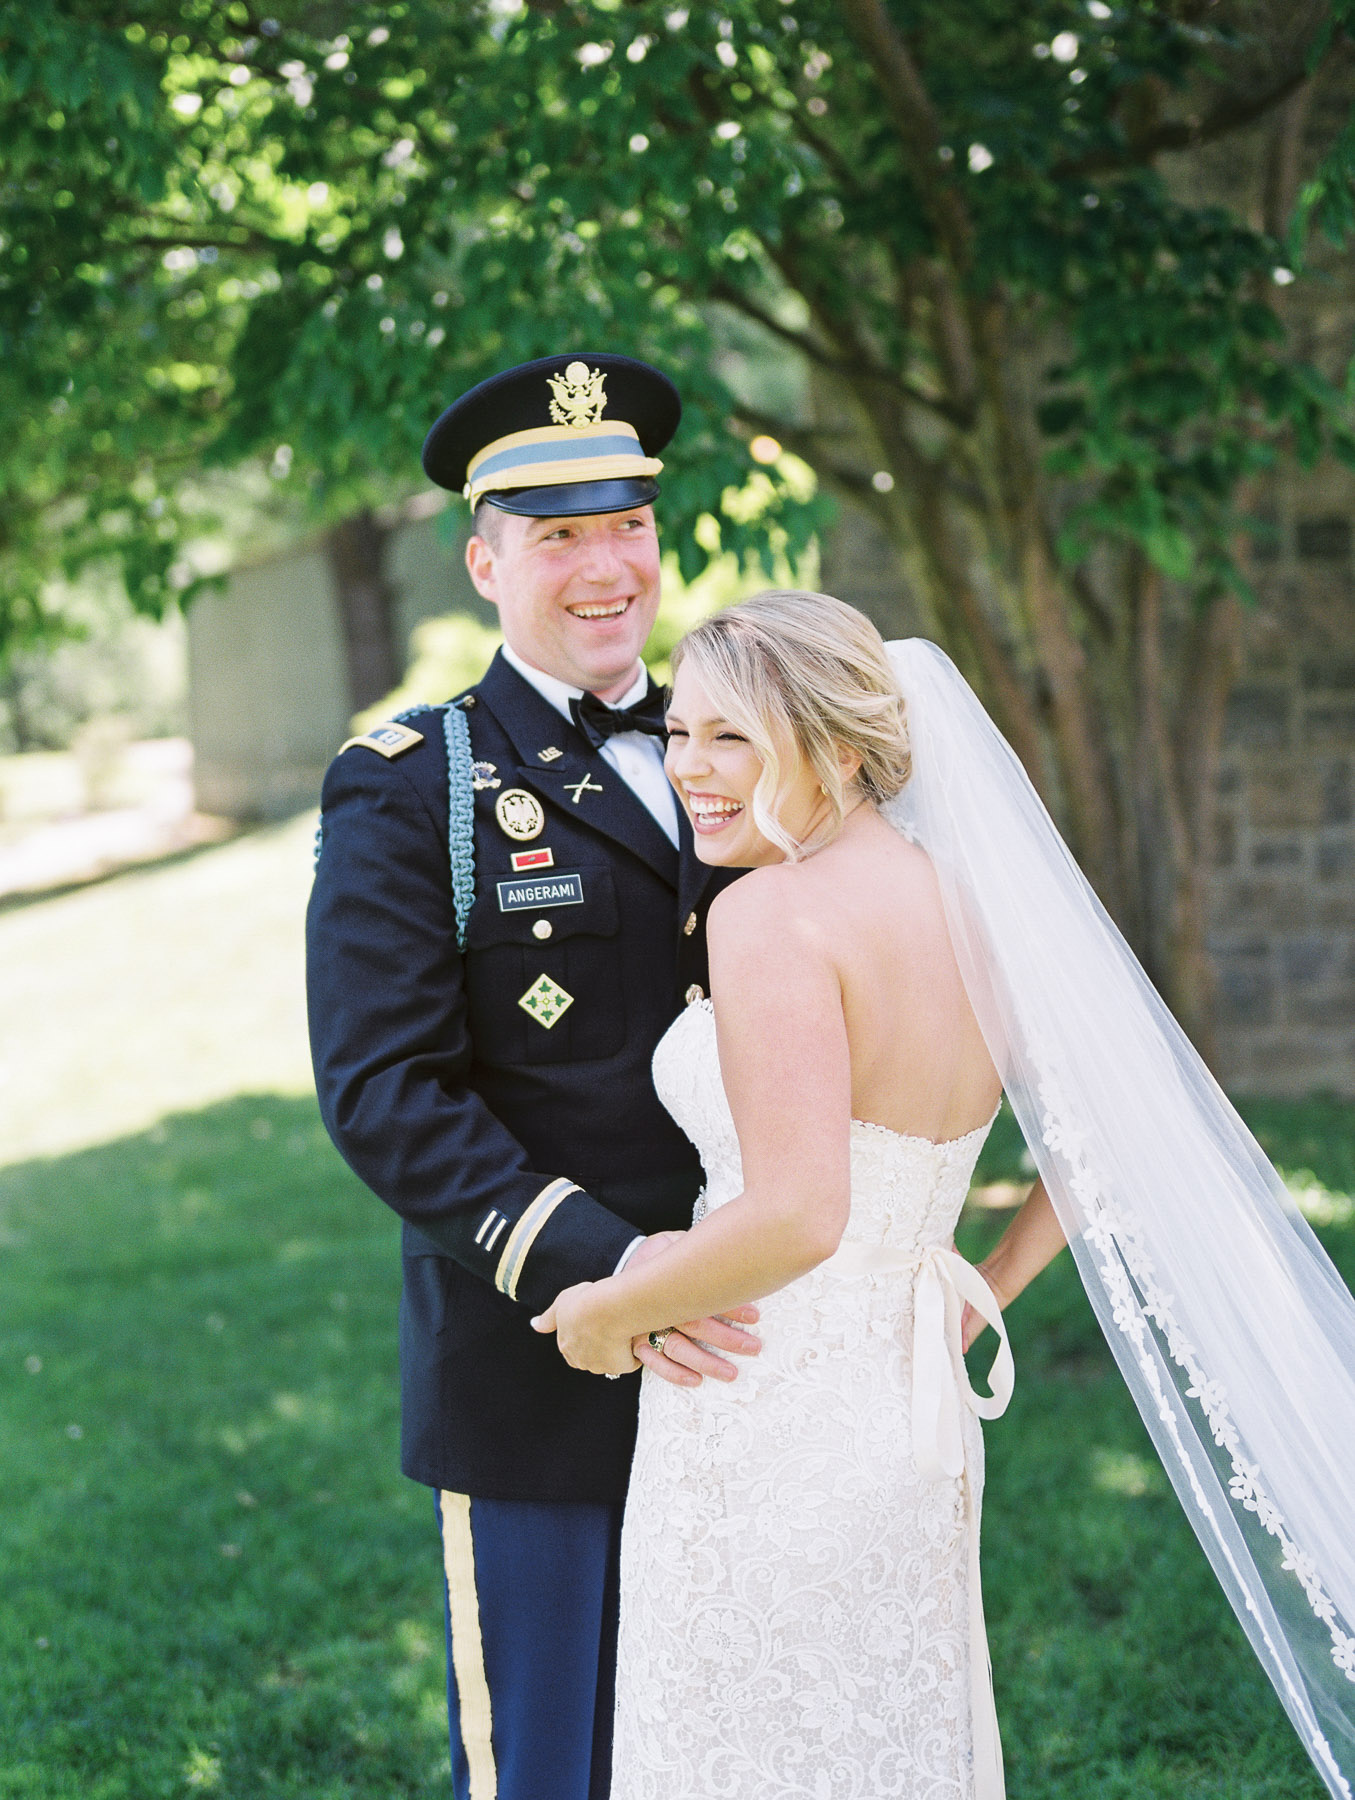 West Point Wedding by Michelle Lange Photography-19.jpg